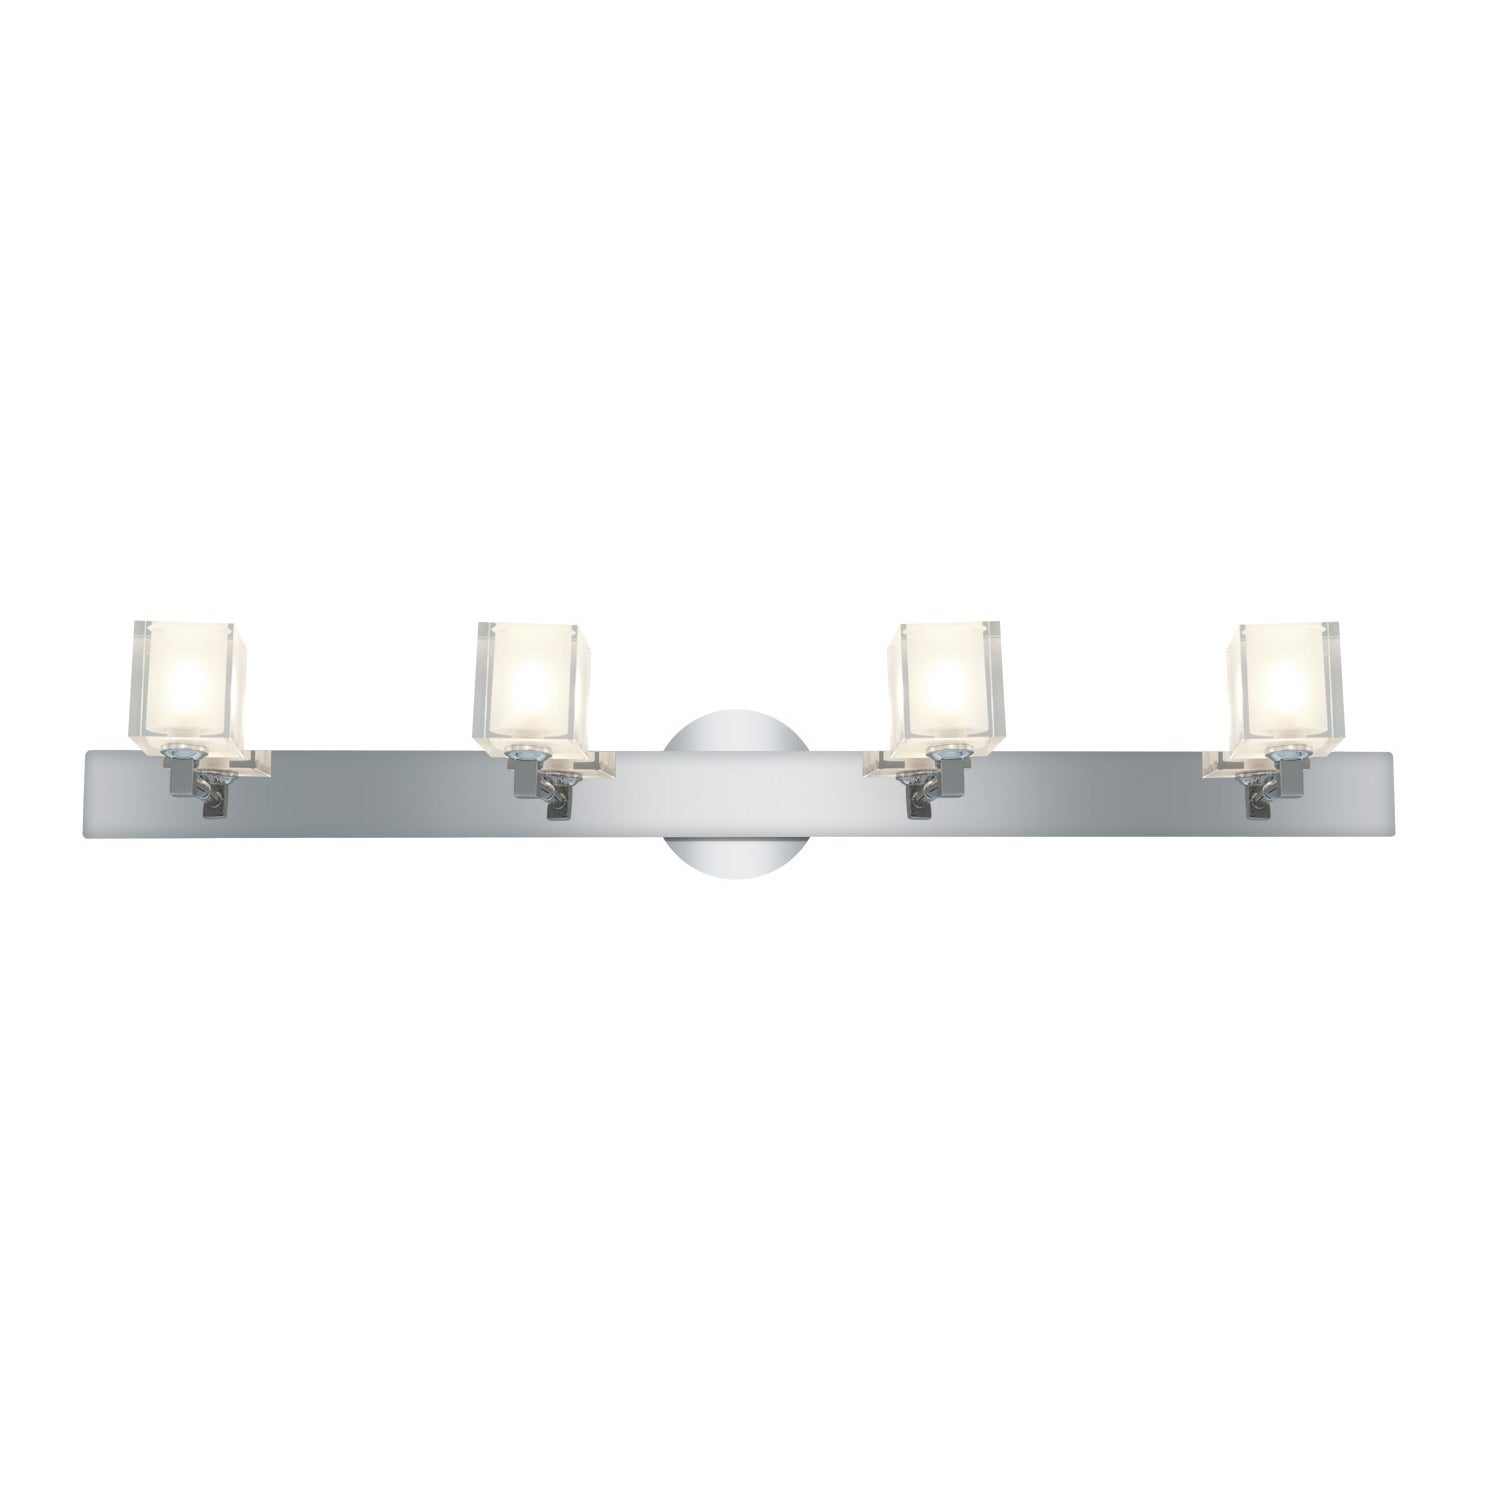 Access Glas'e 4-light Chrome Square Vanity Fixture